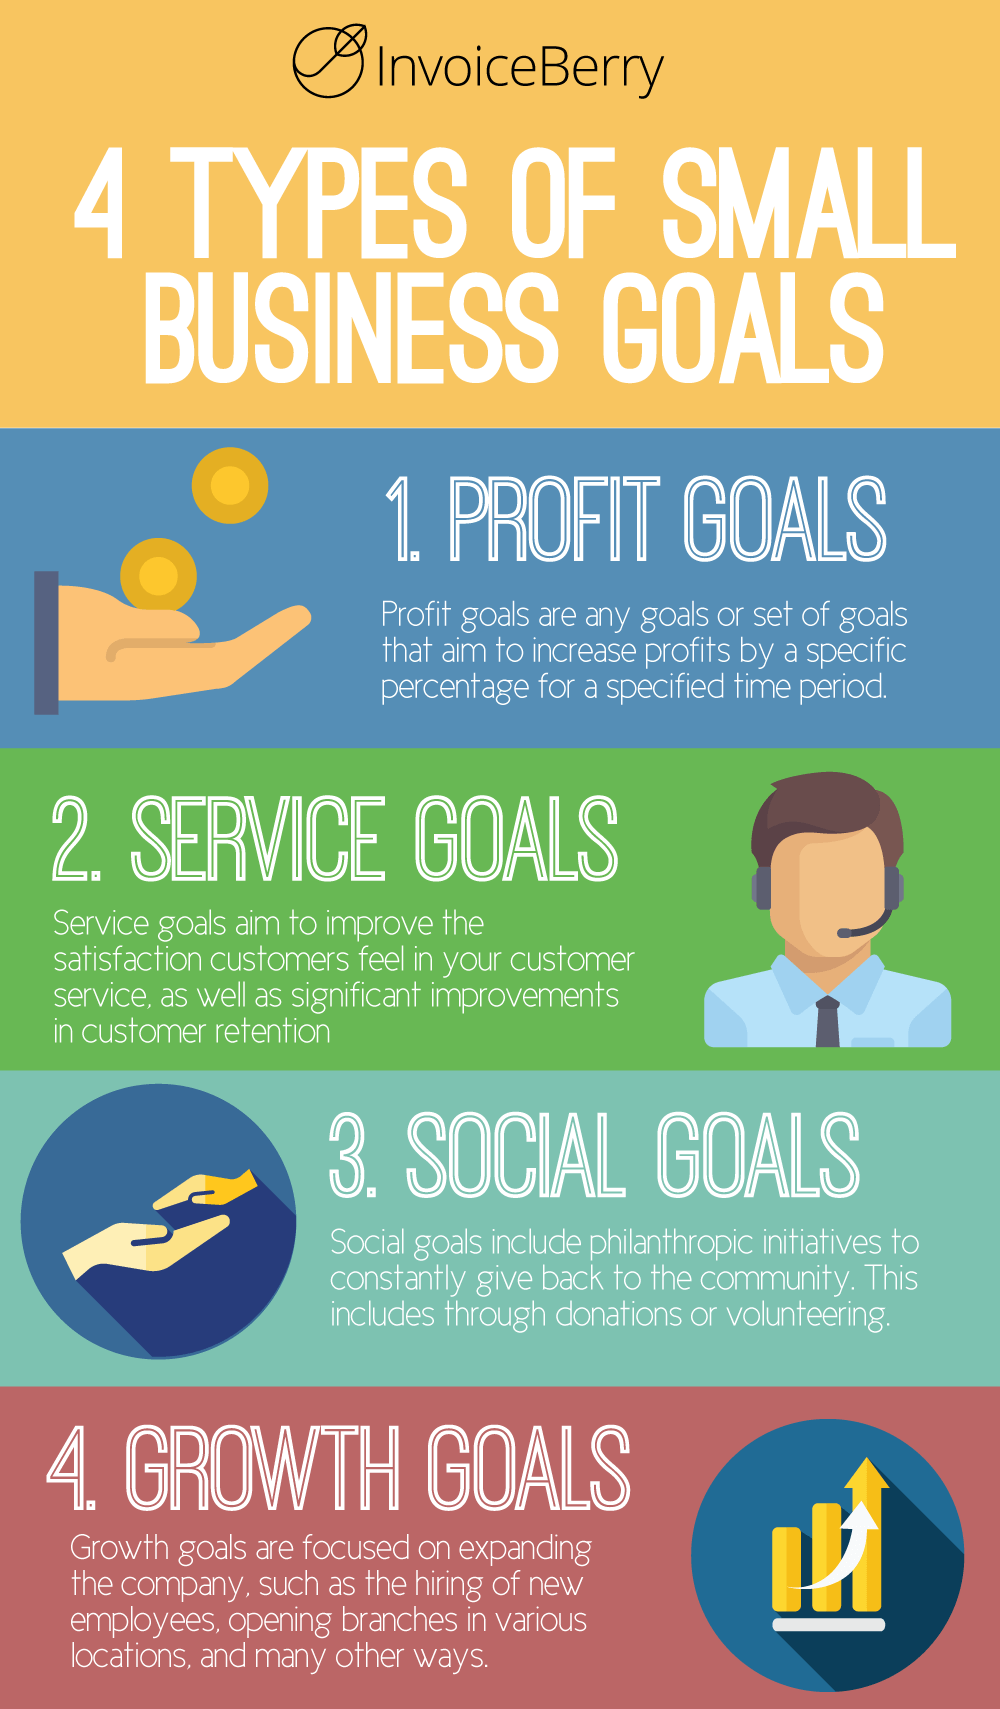 Choose from one of these types to set your small business goals